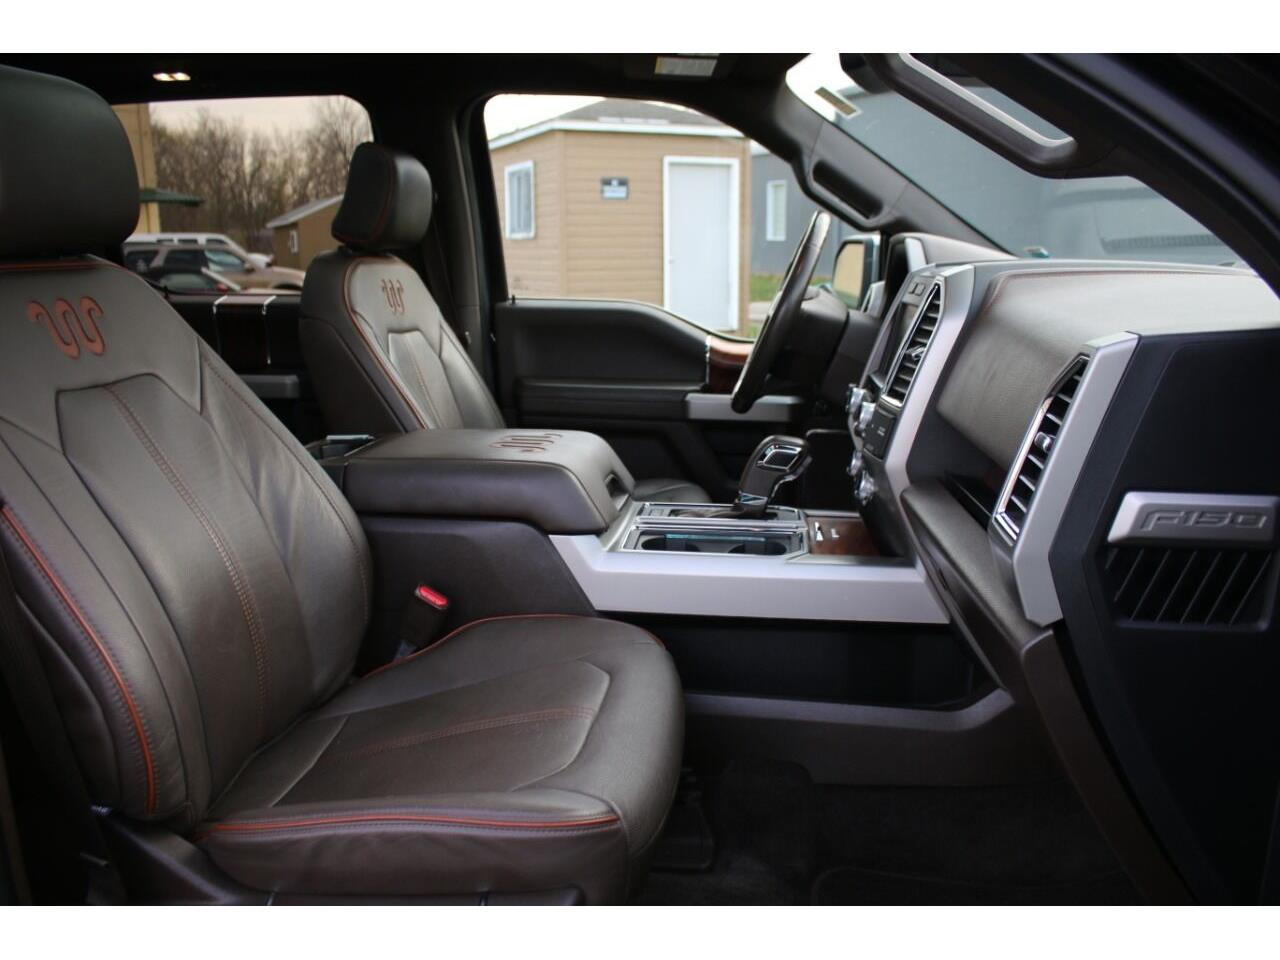 2015 Ford F150 (CC-1419940) for sale in Hilton, New York